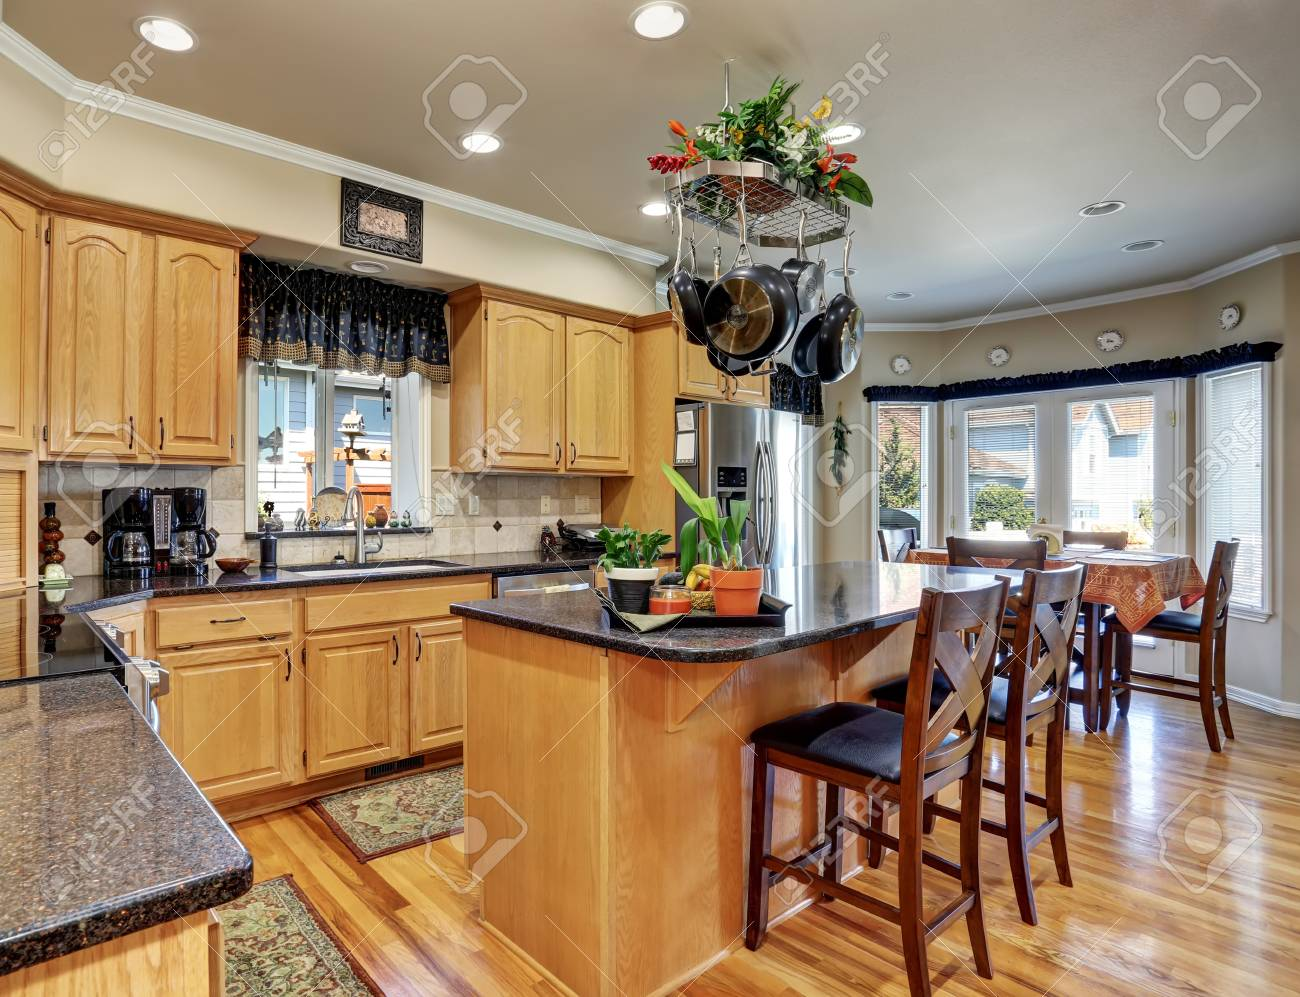 Kitchen and dining room interior in Luxury house. Maple cabinets..